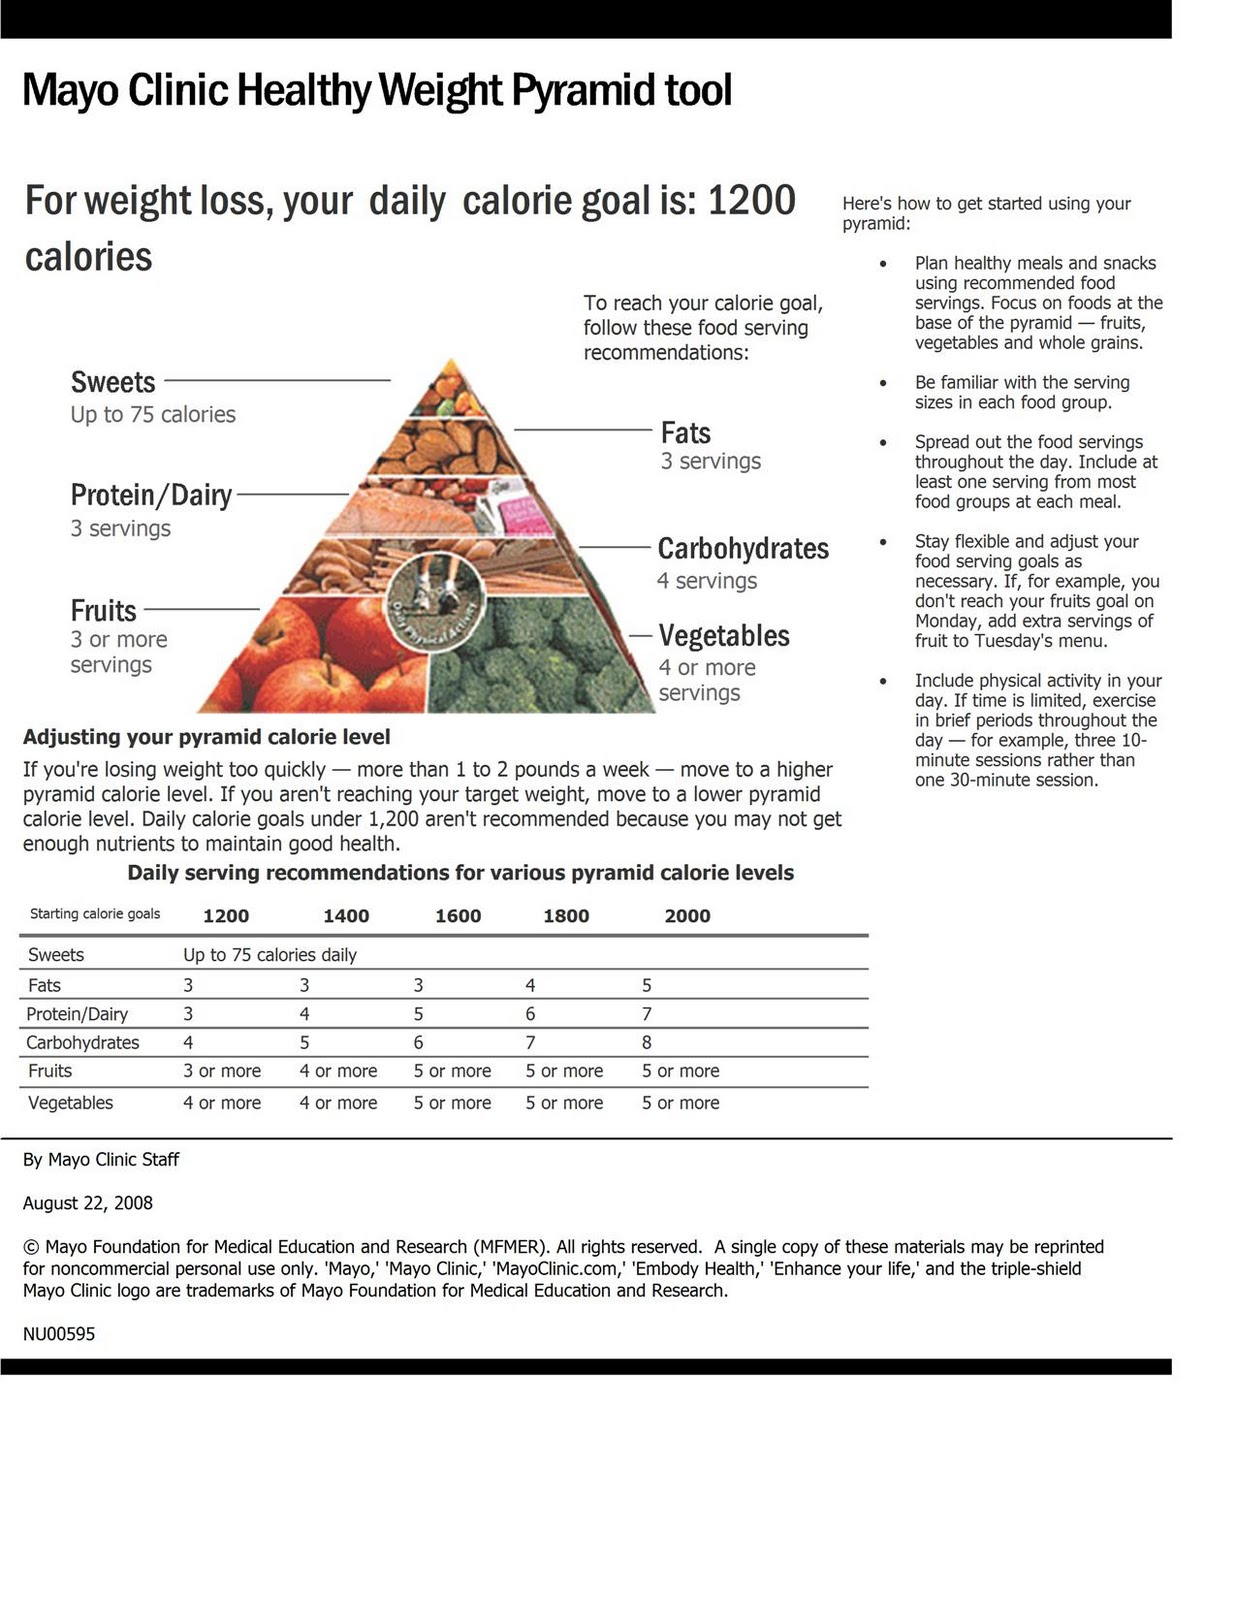 Enter Your Weight Height And Age To Get A Pyramid Based On Needs There S Mayo Clinic T Too Real One Actually Created By The